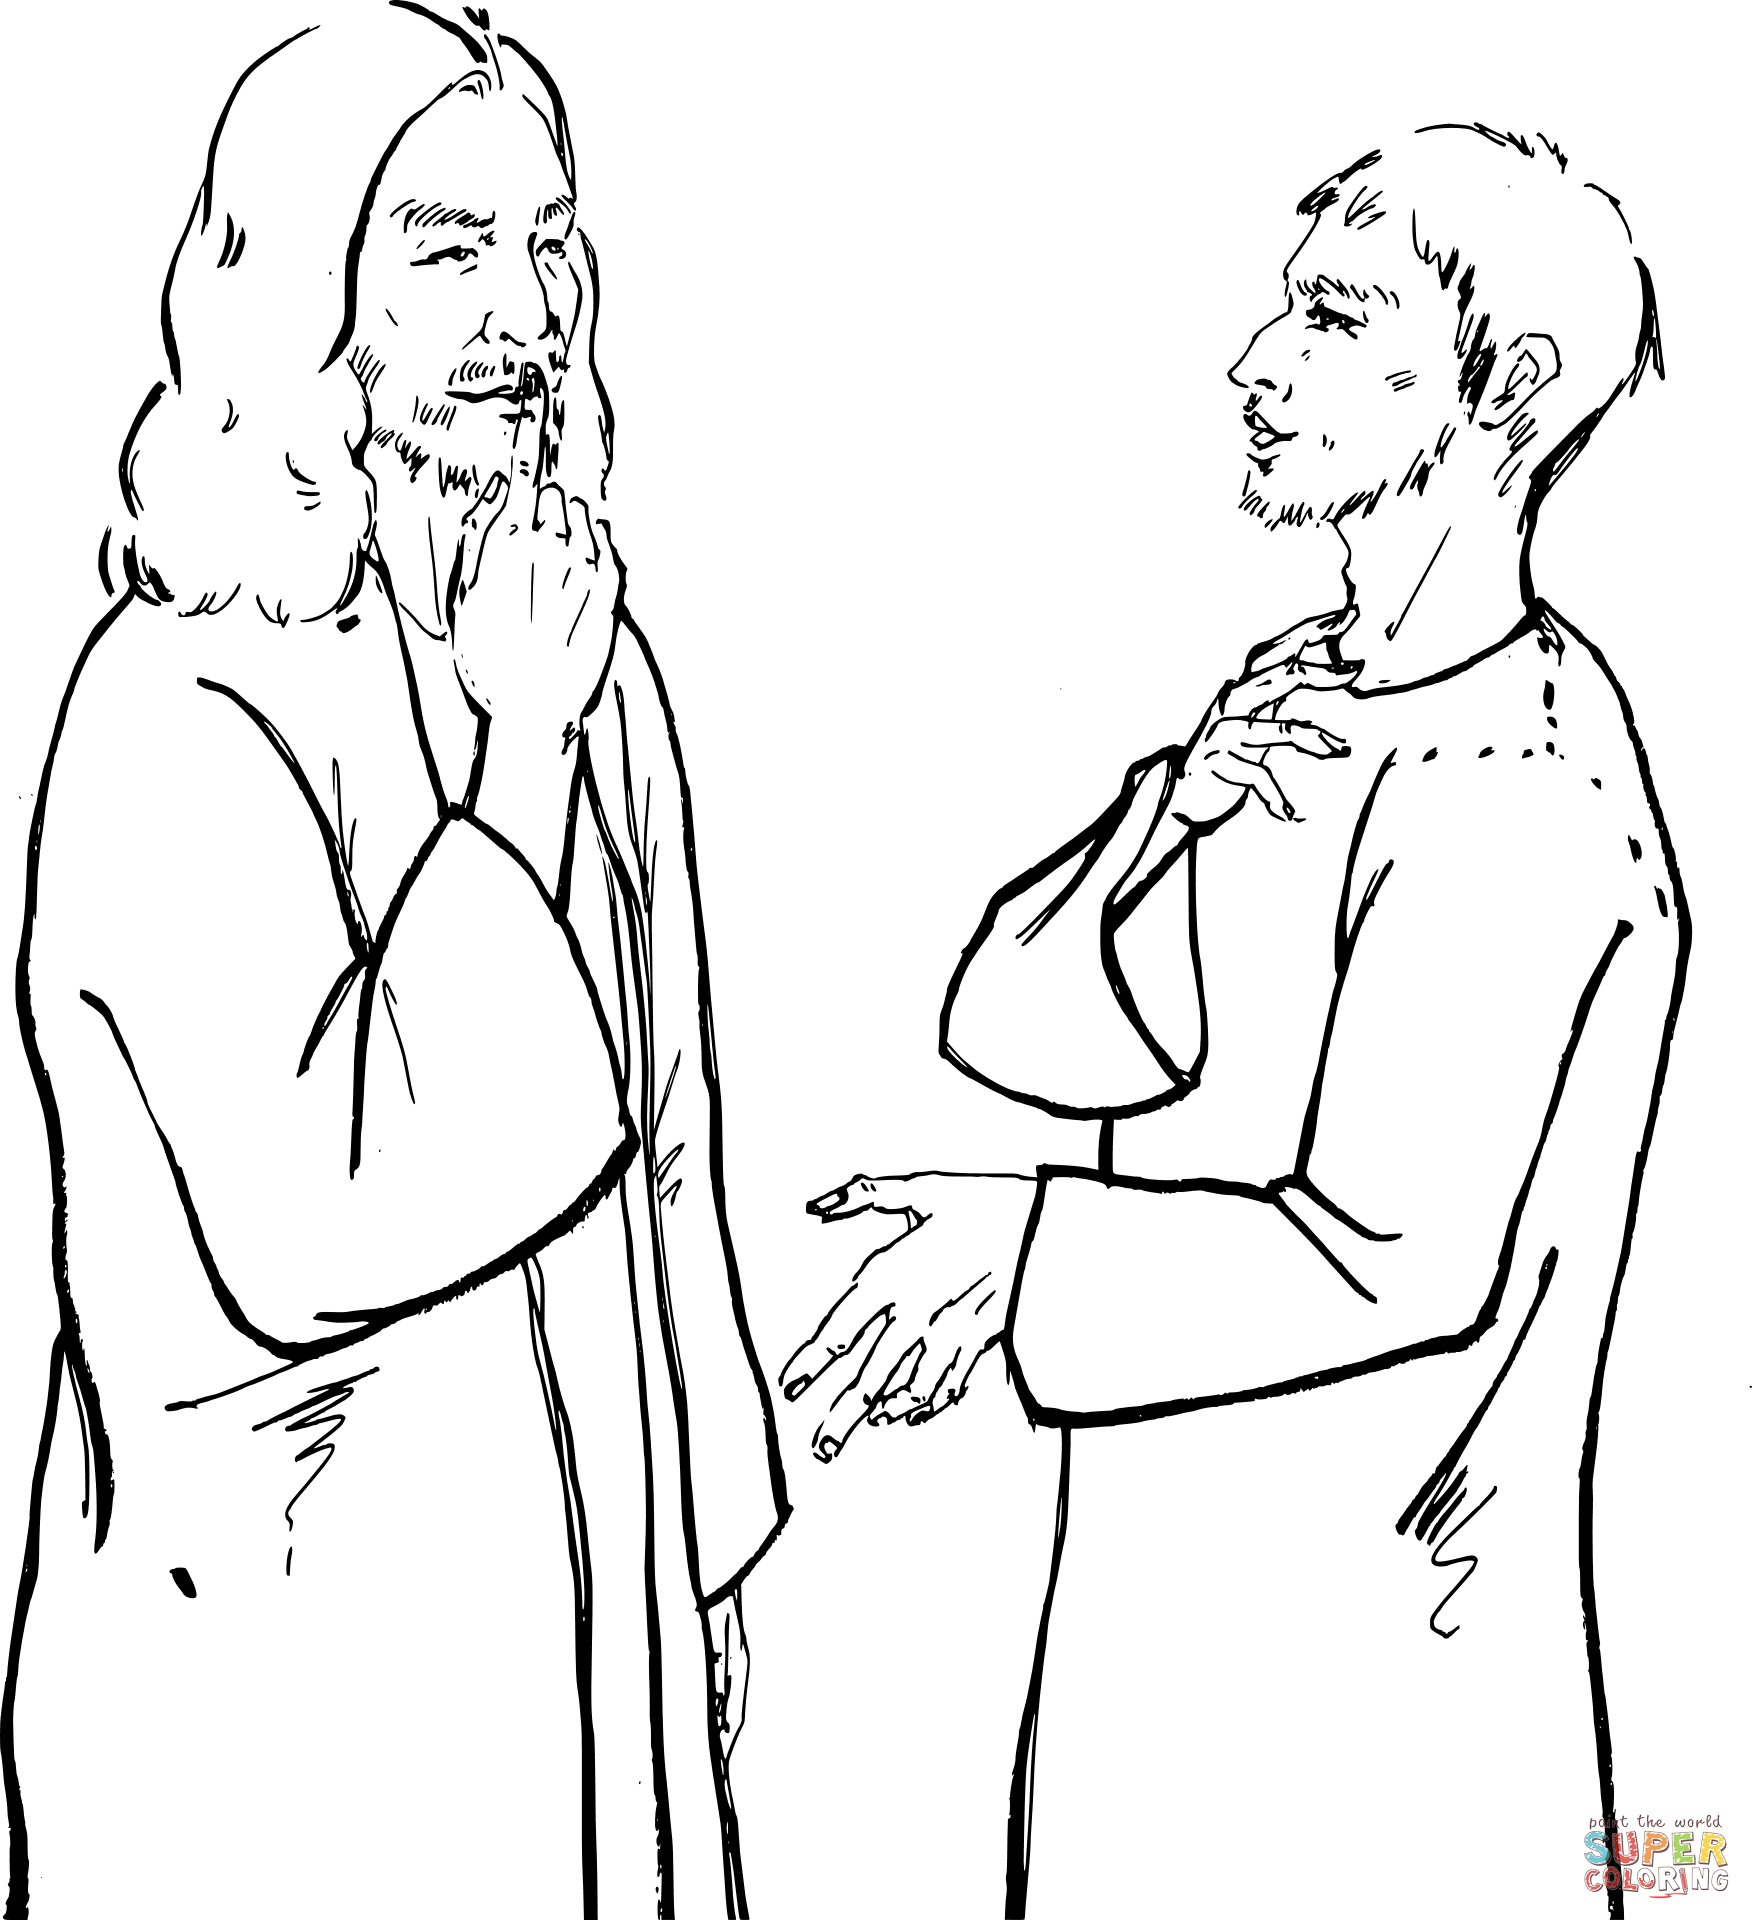 jesus heals the leper coloring page ten lepers coloring page coloring pages jesus coloring page jesus leper coloring heals the